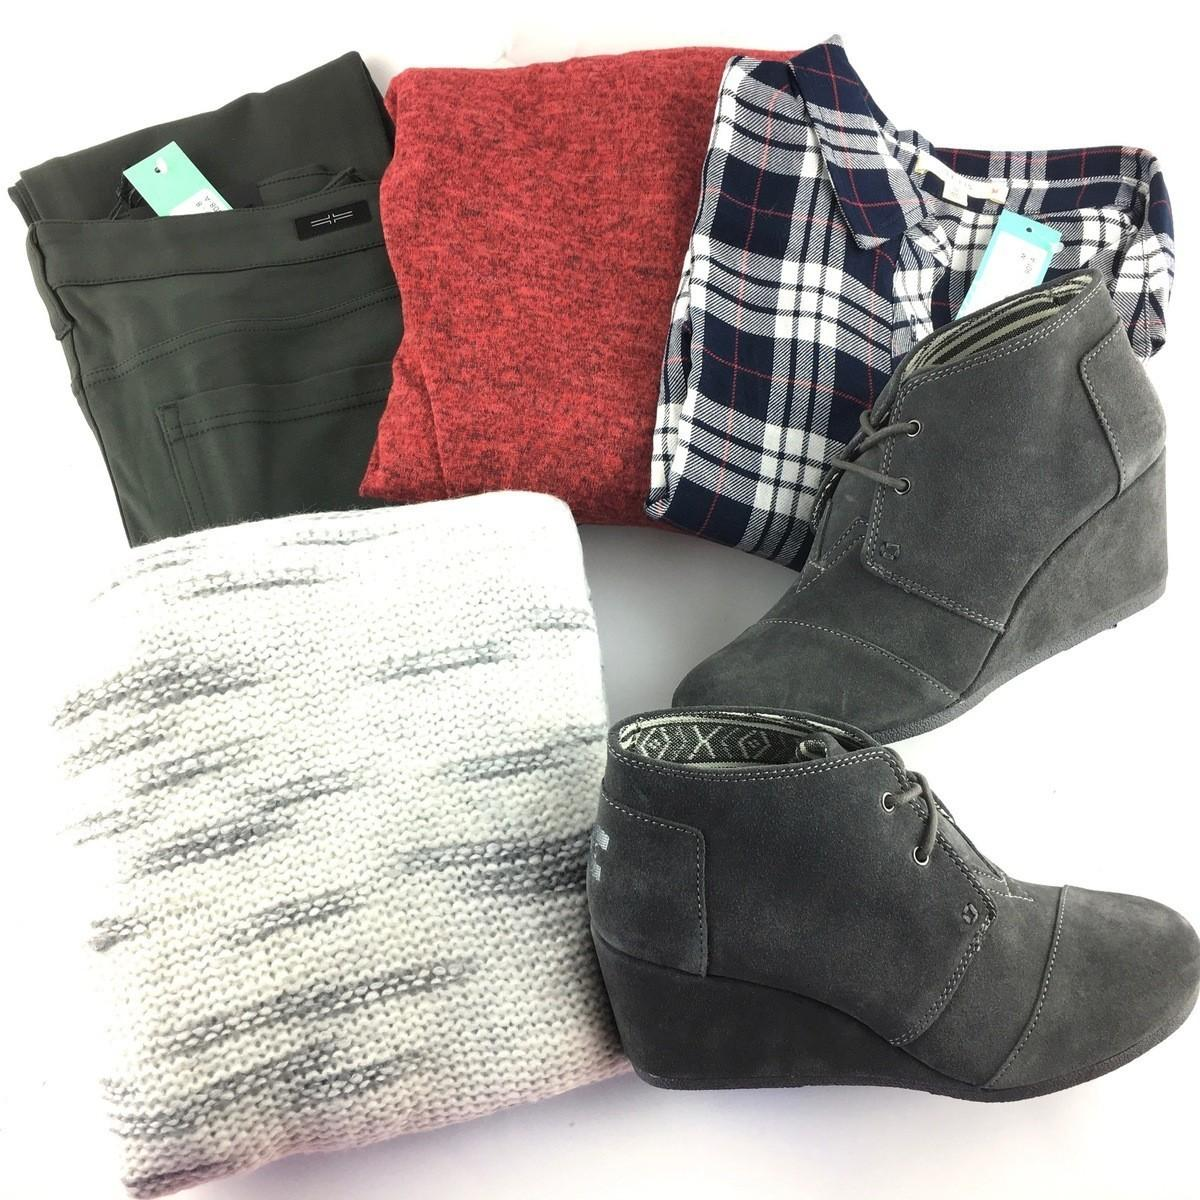 49bab1c4a6222 Stitch Fix Review - October 2017 - Subscription Box Ramblings